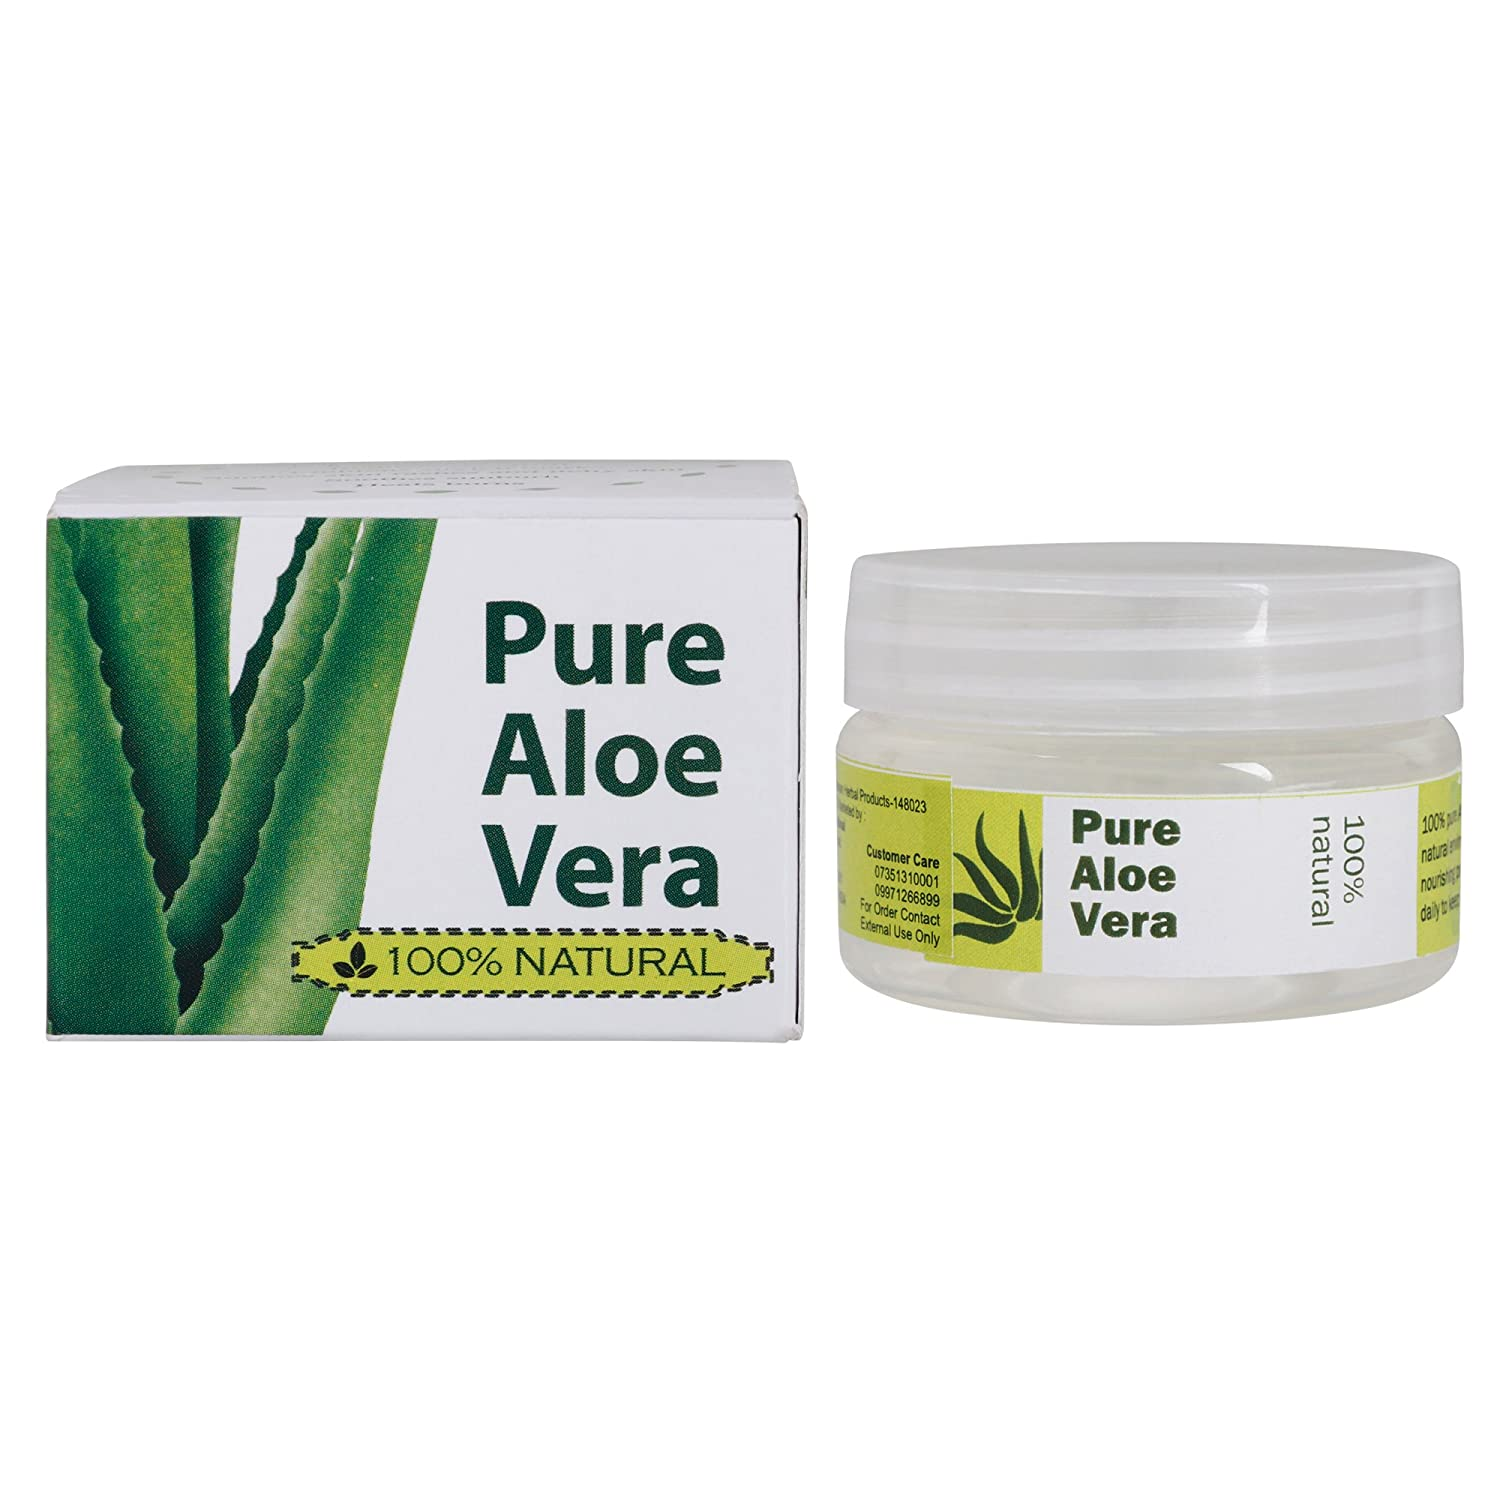 The Gauri International 100% Natural Aloe Vera Gel travel product recommended by Ankit Sitoke on Pretty Progressive.